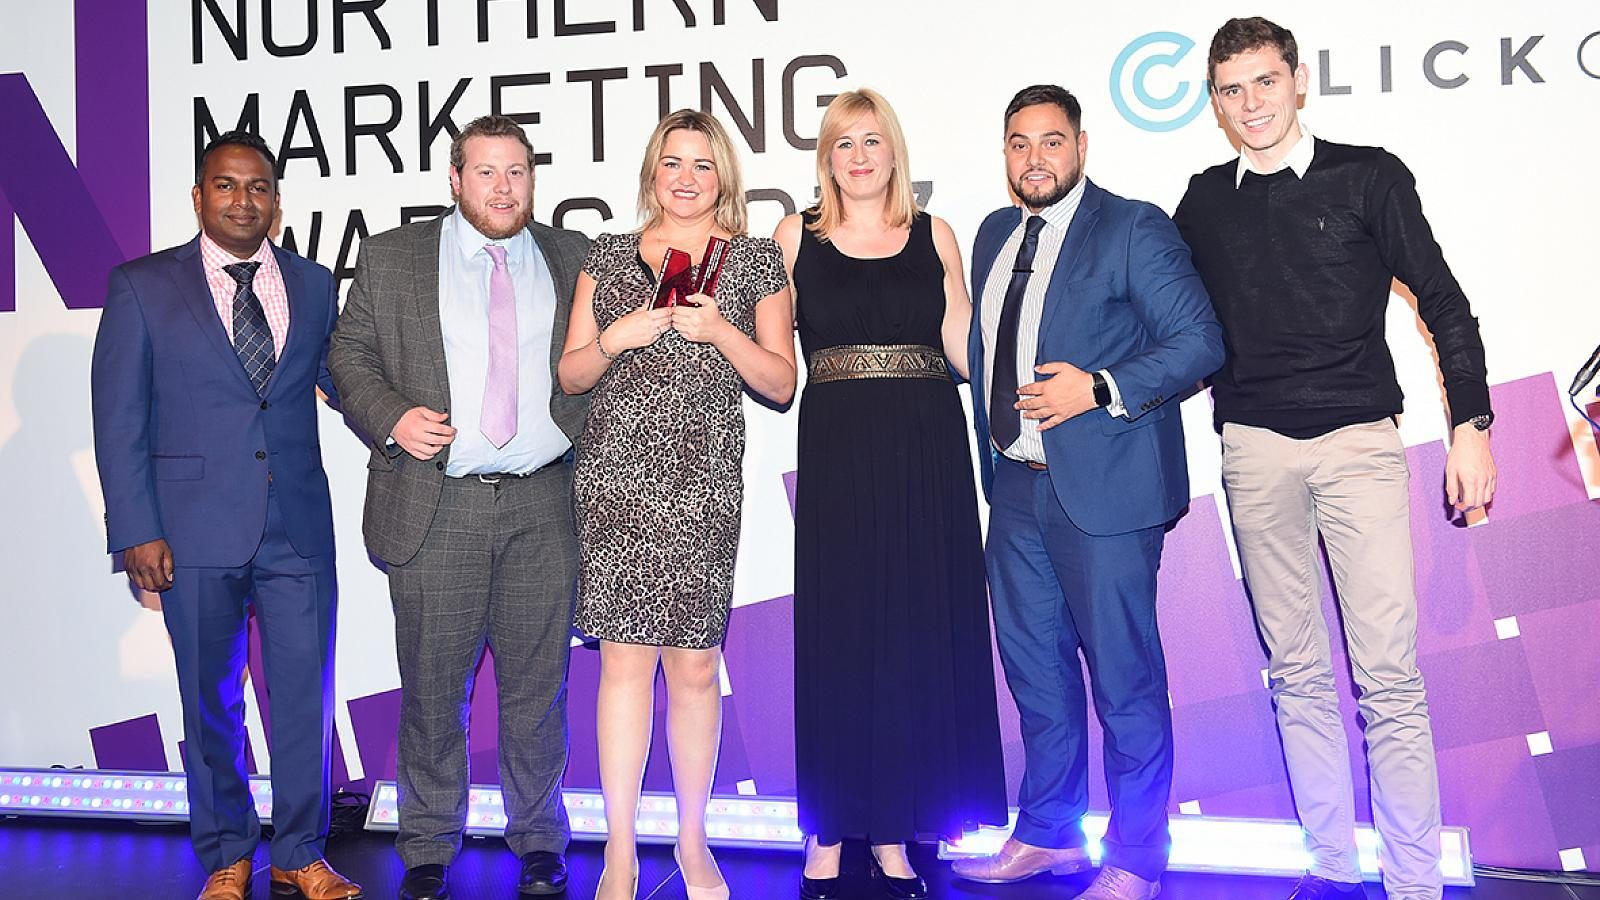 northern marketing awards 2017